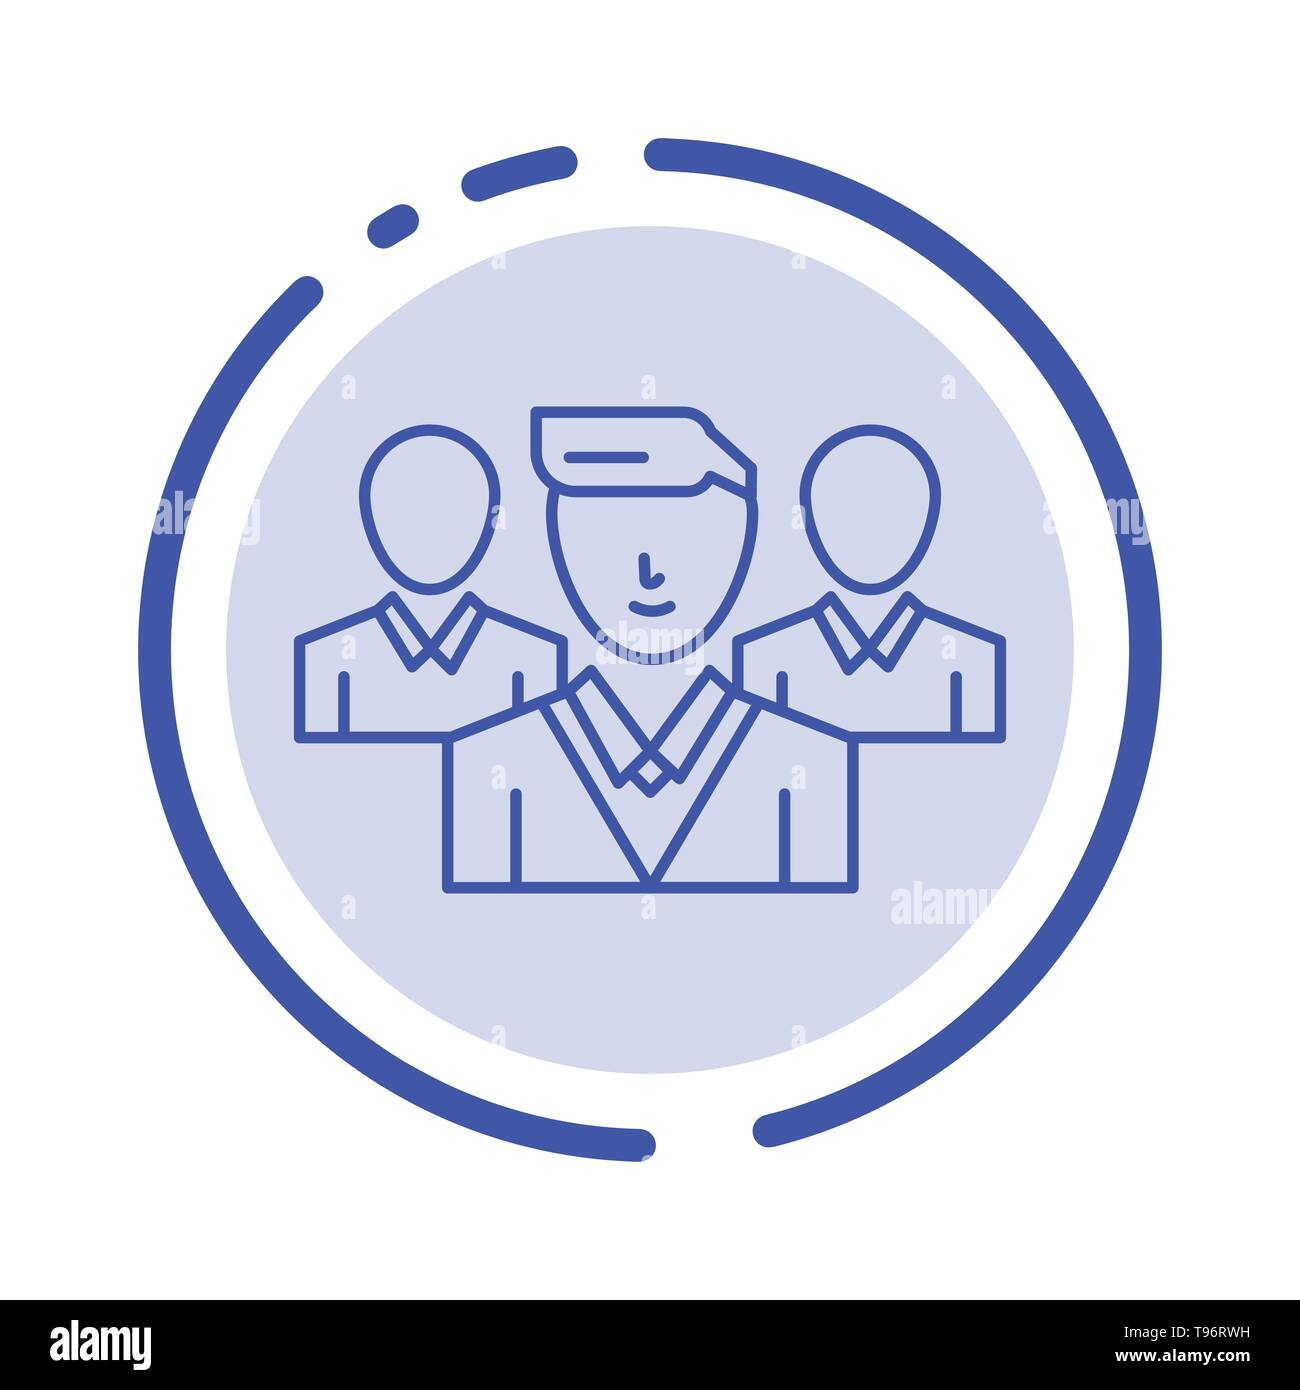 Staff, Security, Friend zone, Gang Blue Dotted Line Line Icon - Stock Image